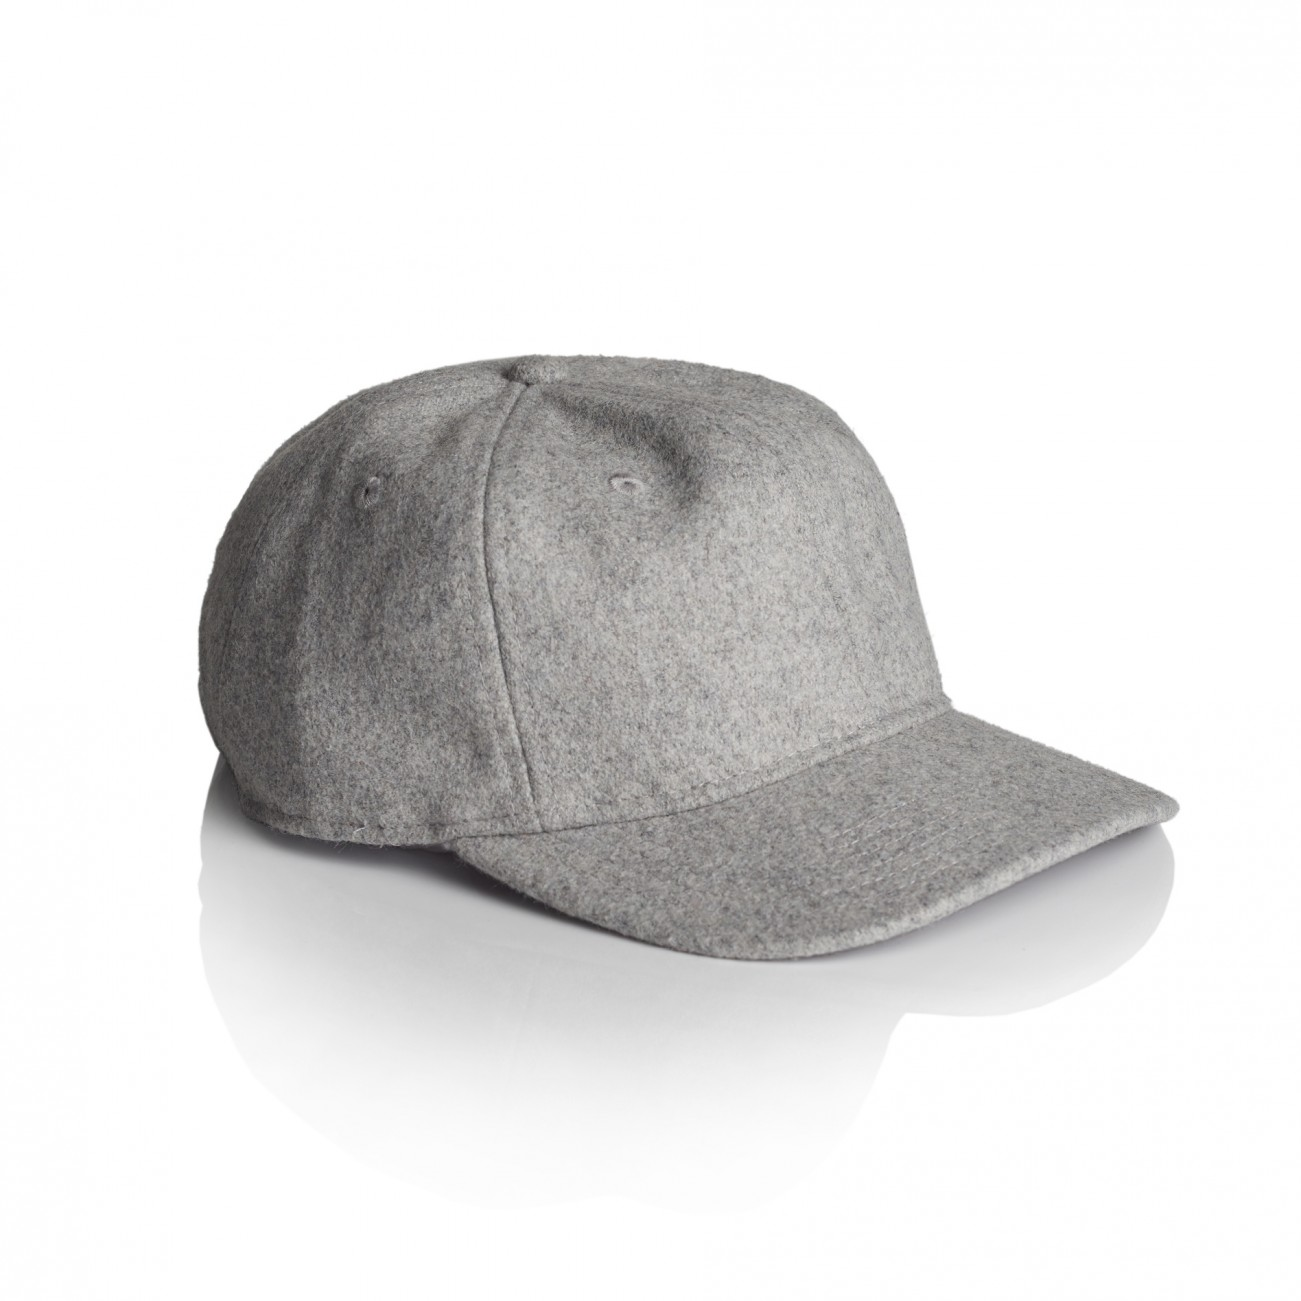 1113_bates_cap_athletic_grey_3.jpg